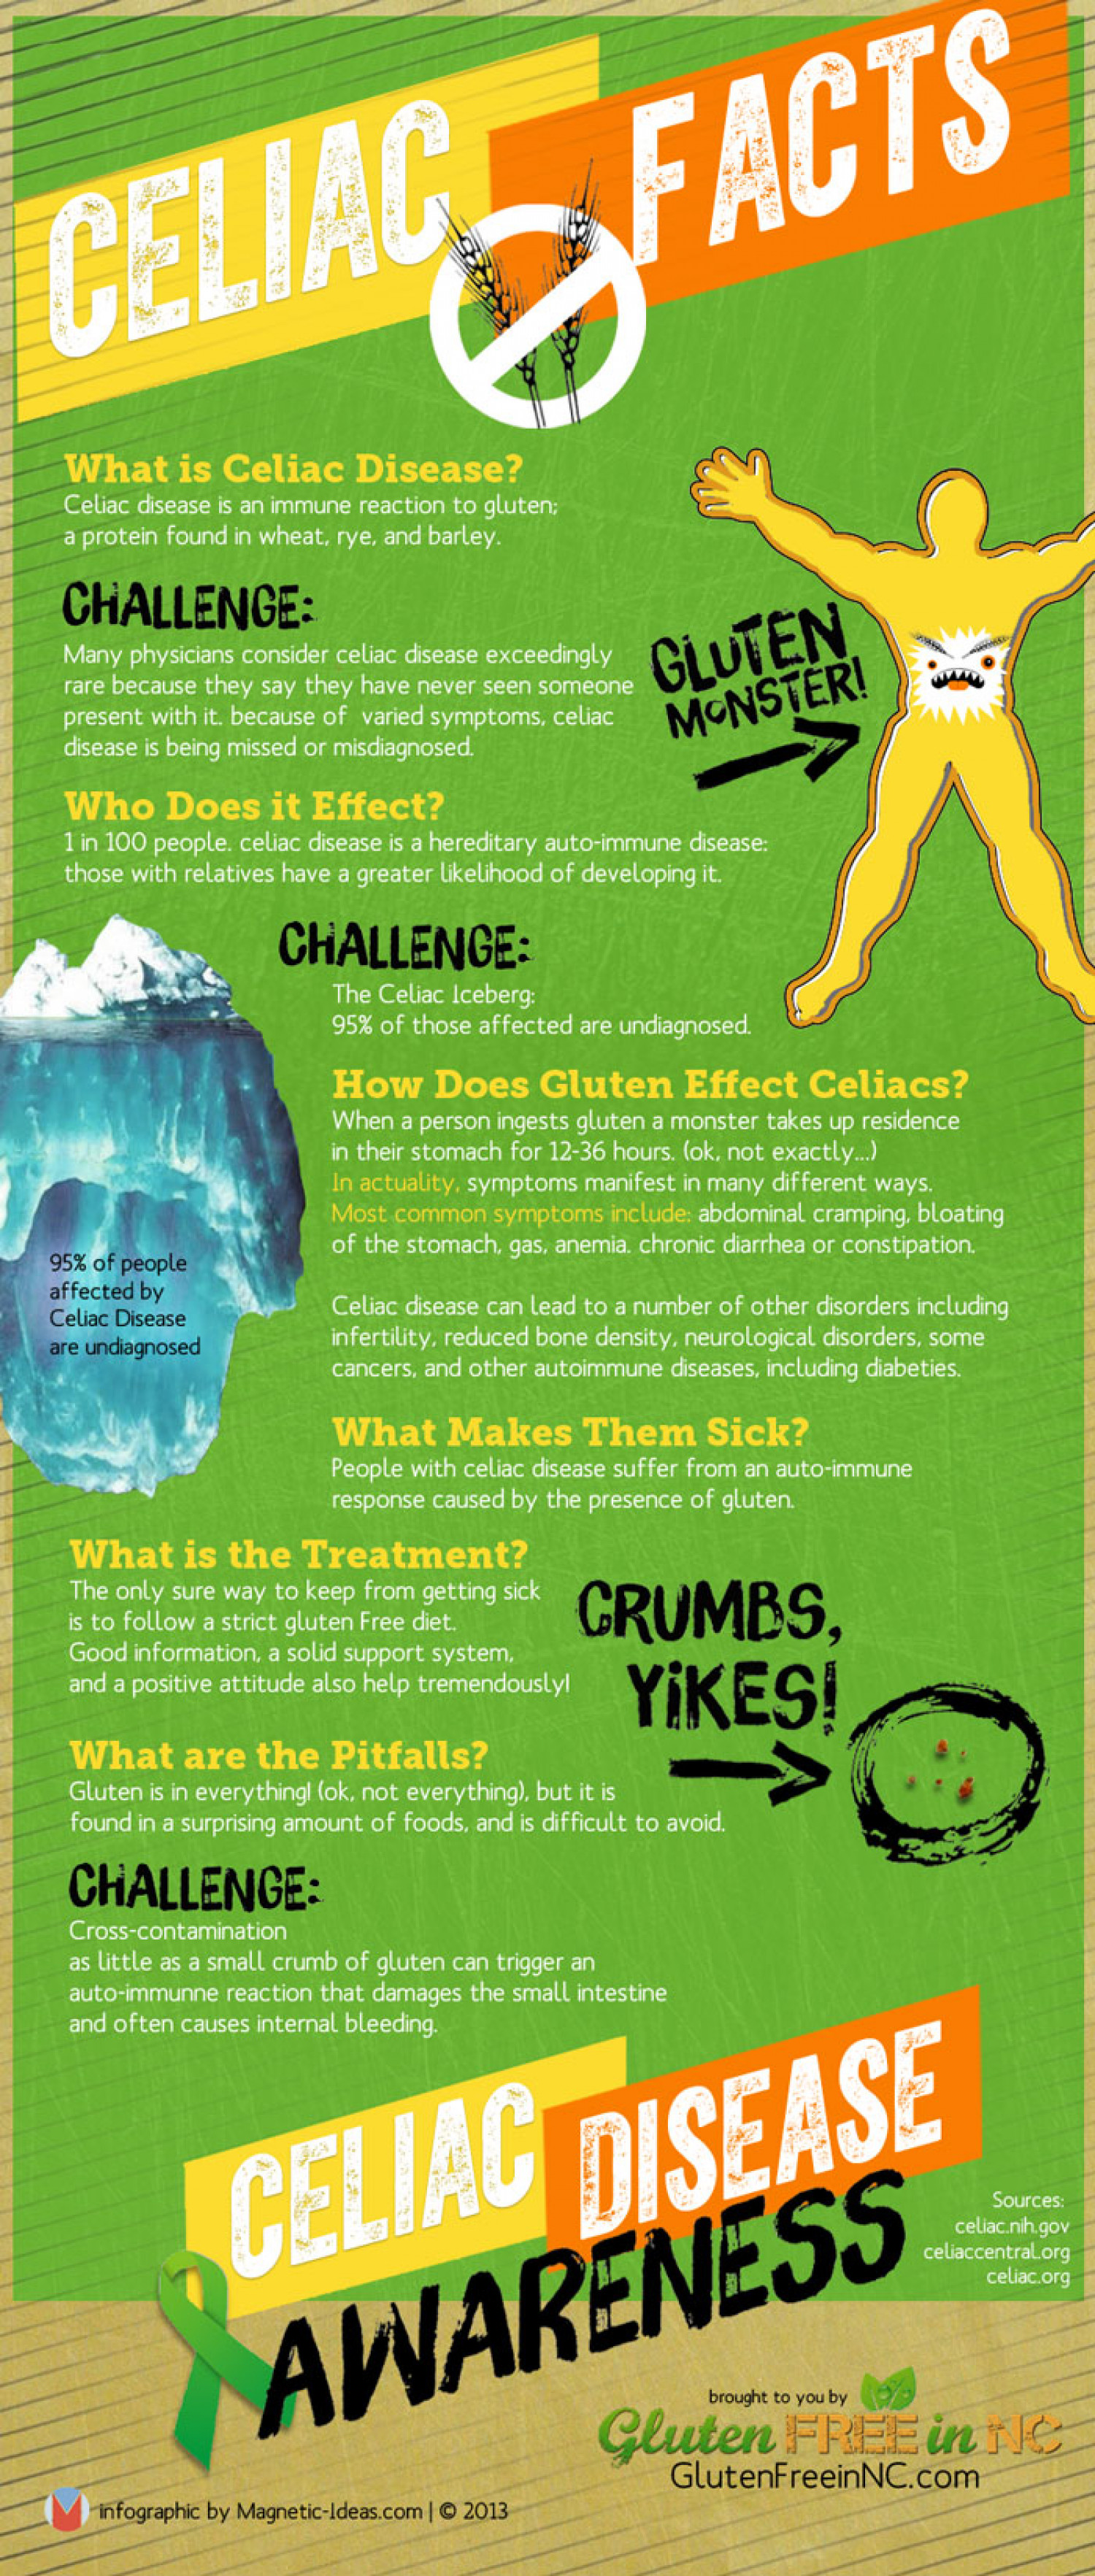 Celiac Facts - Celiac Disease Awareness Infographic